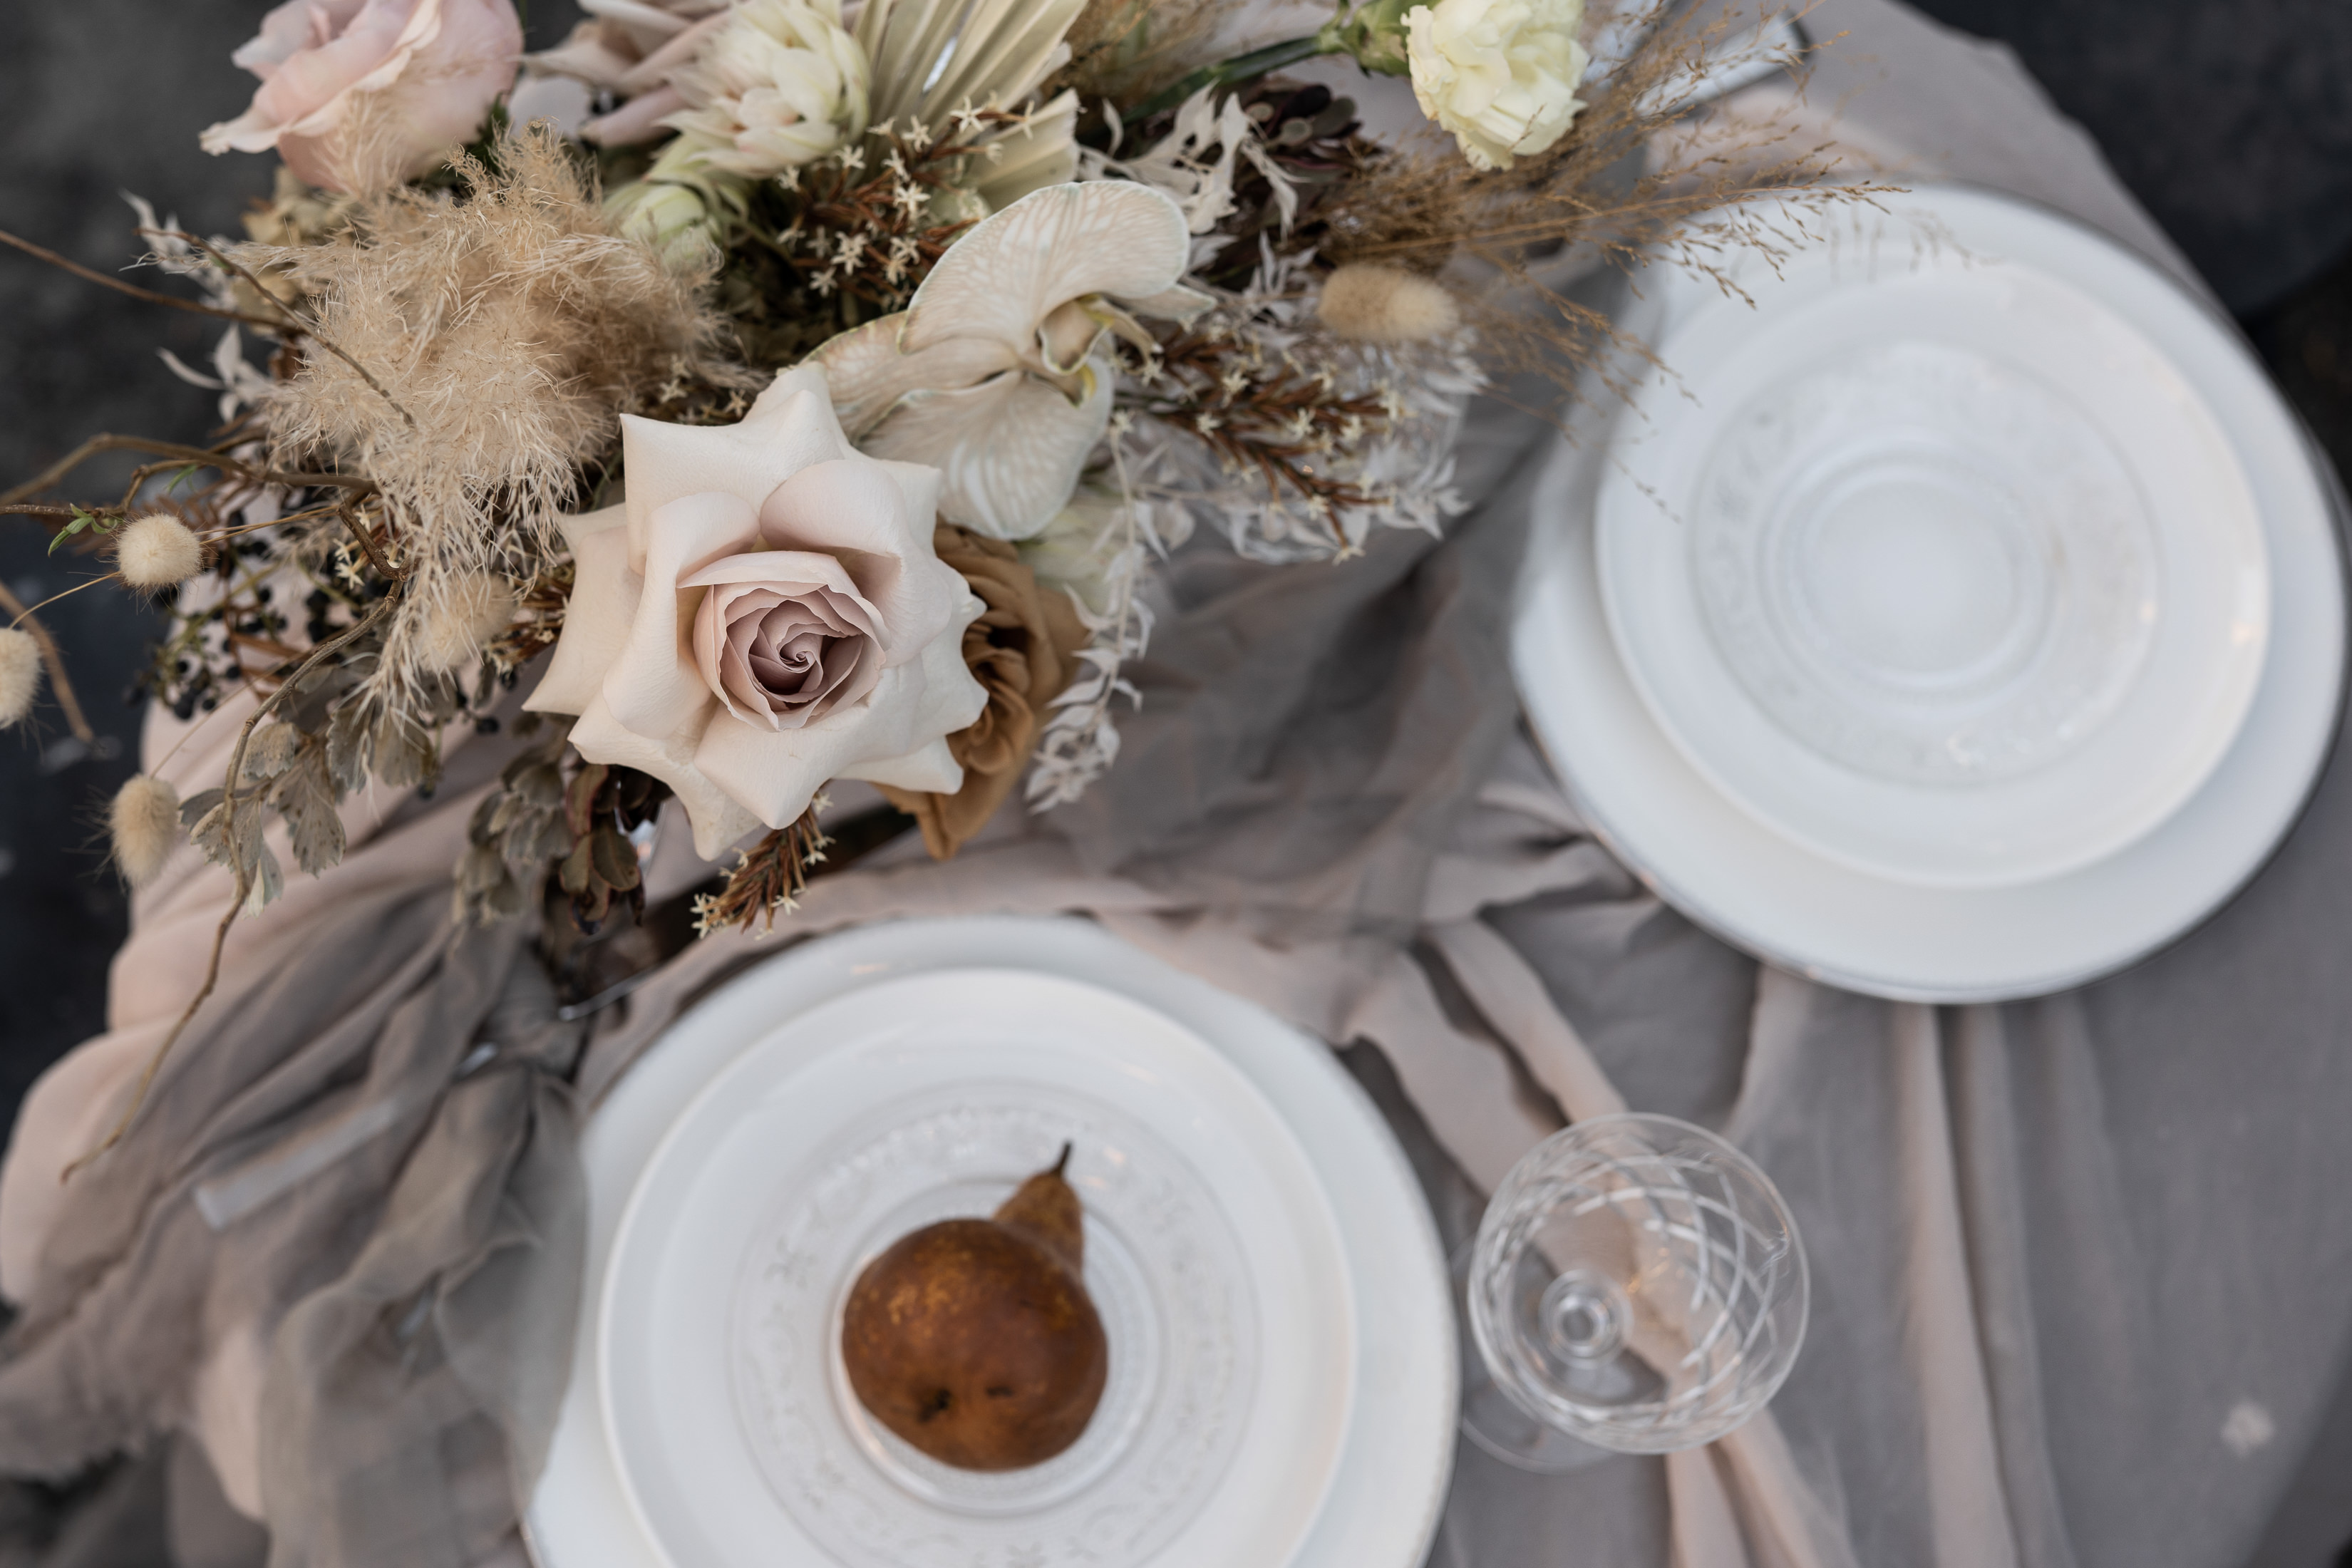 https://scenicrimbride.com.au/wp-content/uploads/2019/08/SRB_-_Sarabah_Estate_Styled_Shoot-0039.jpg